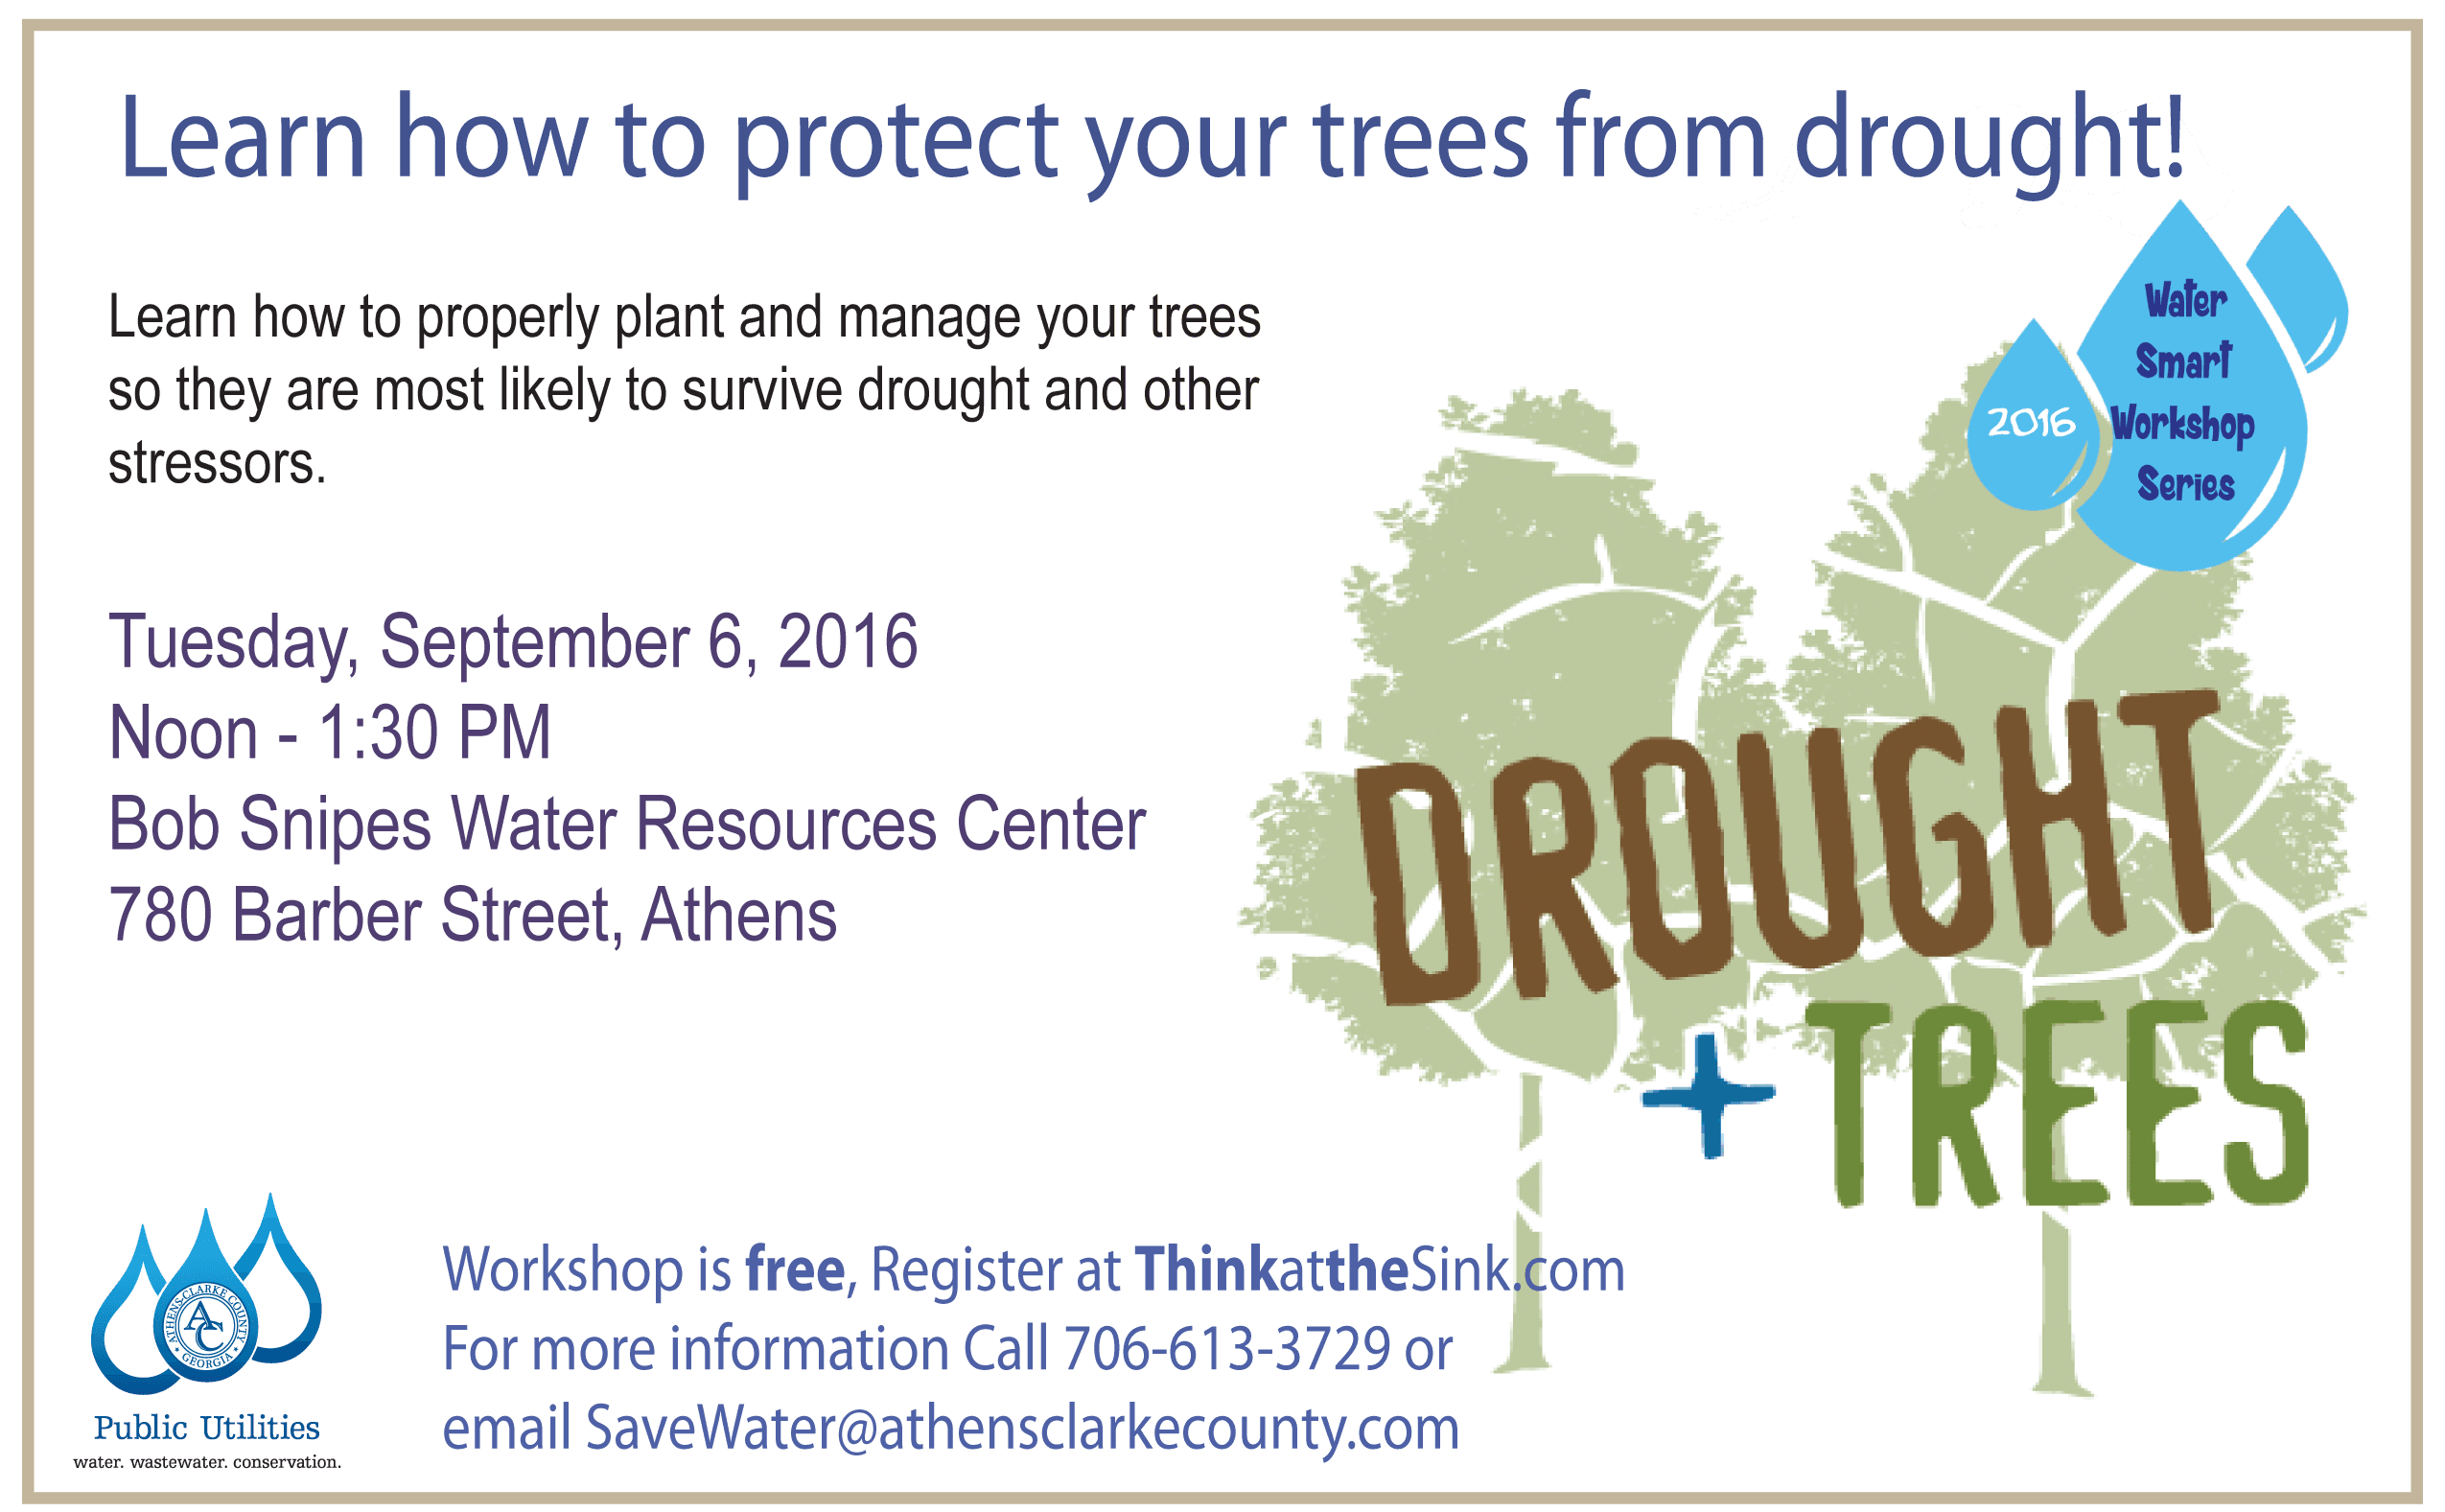 water smart series drought trees